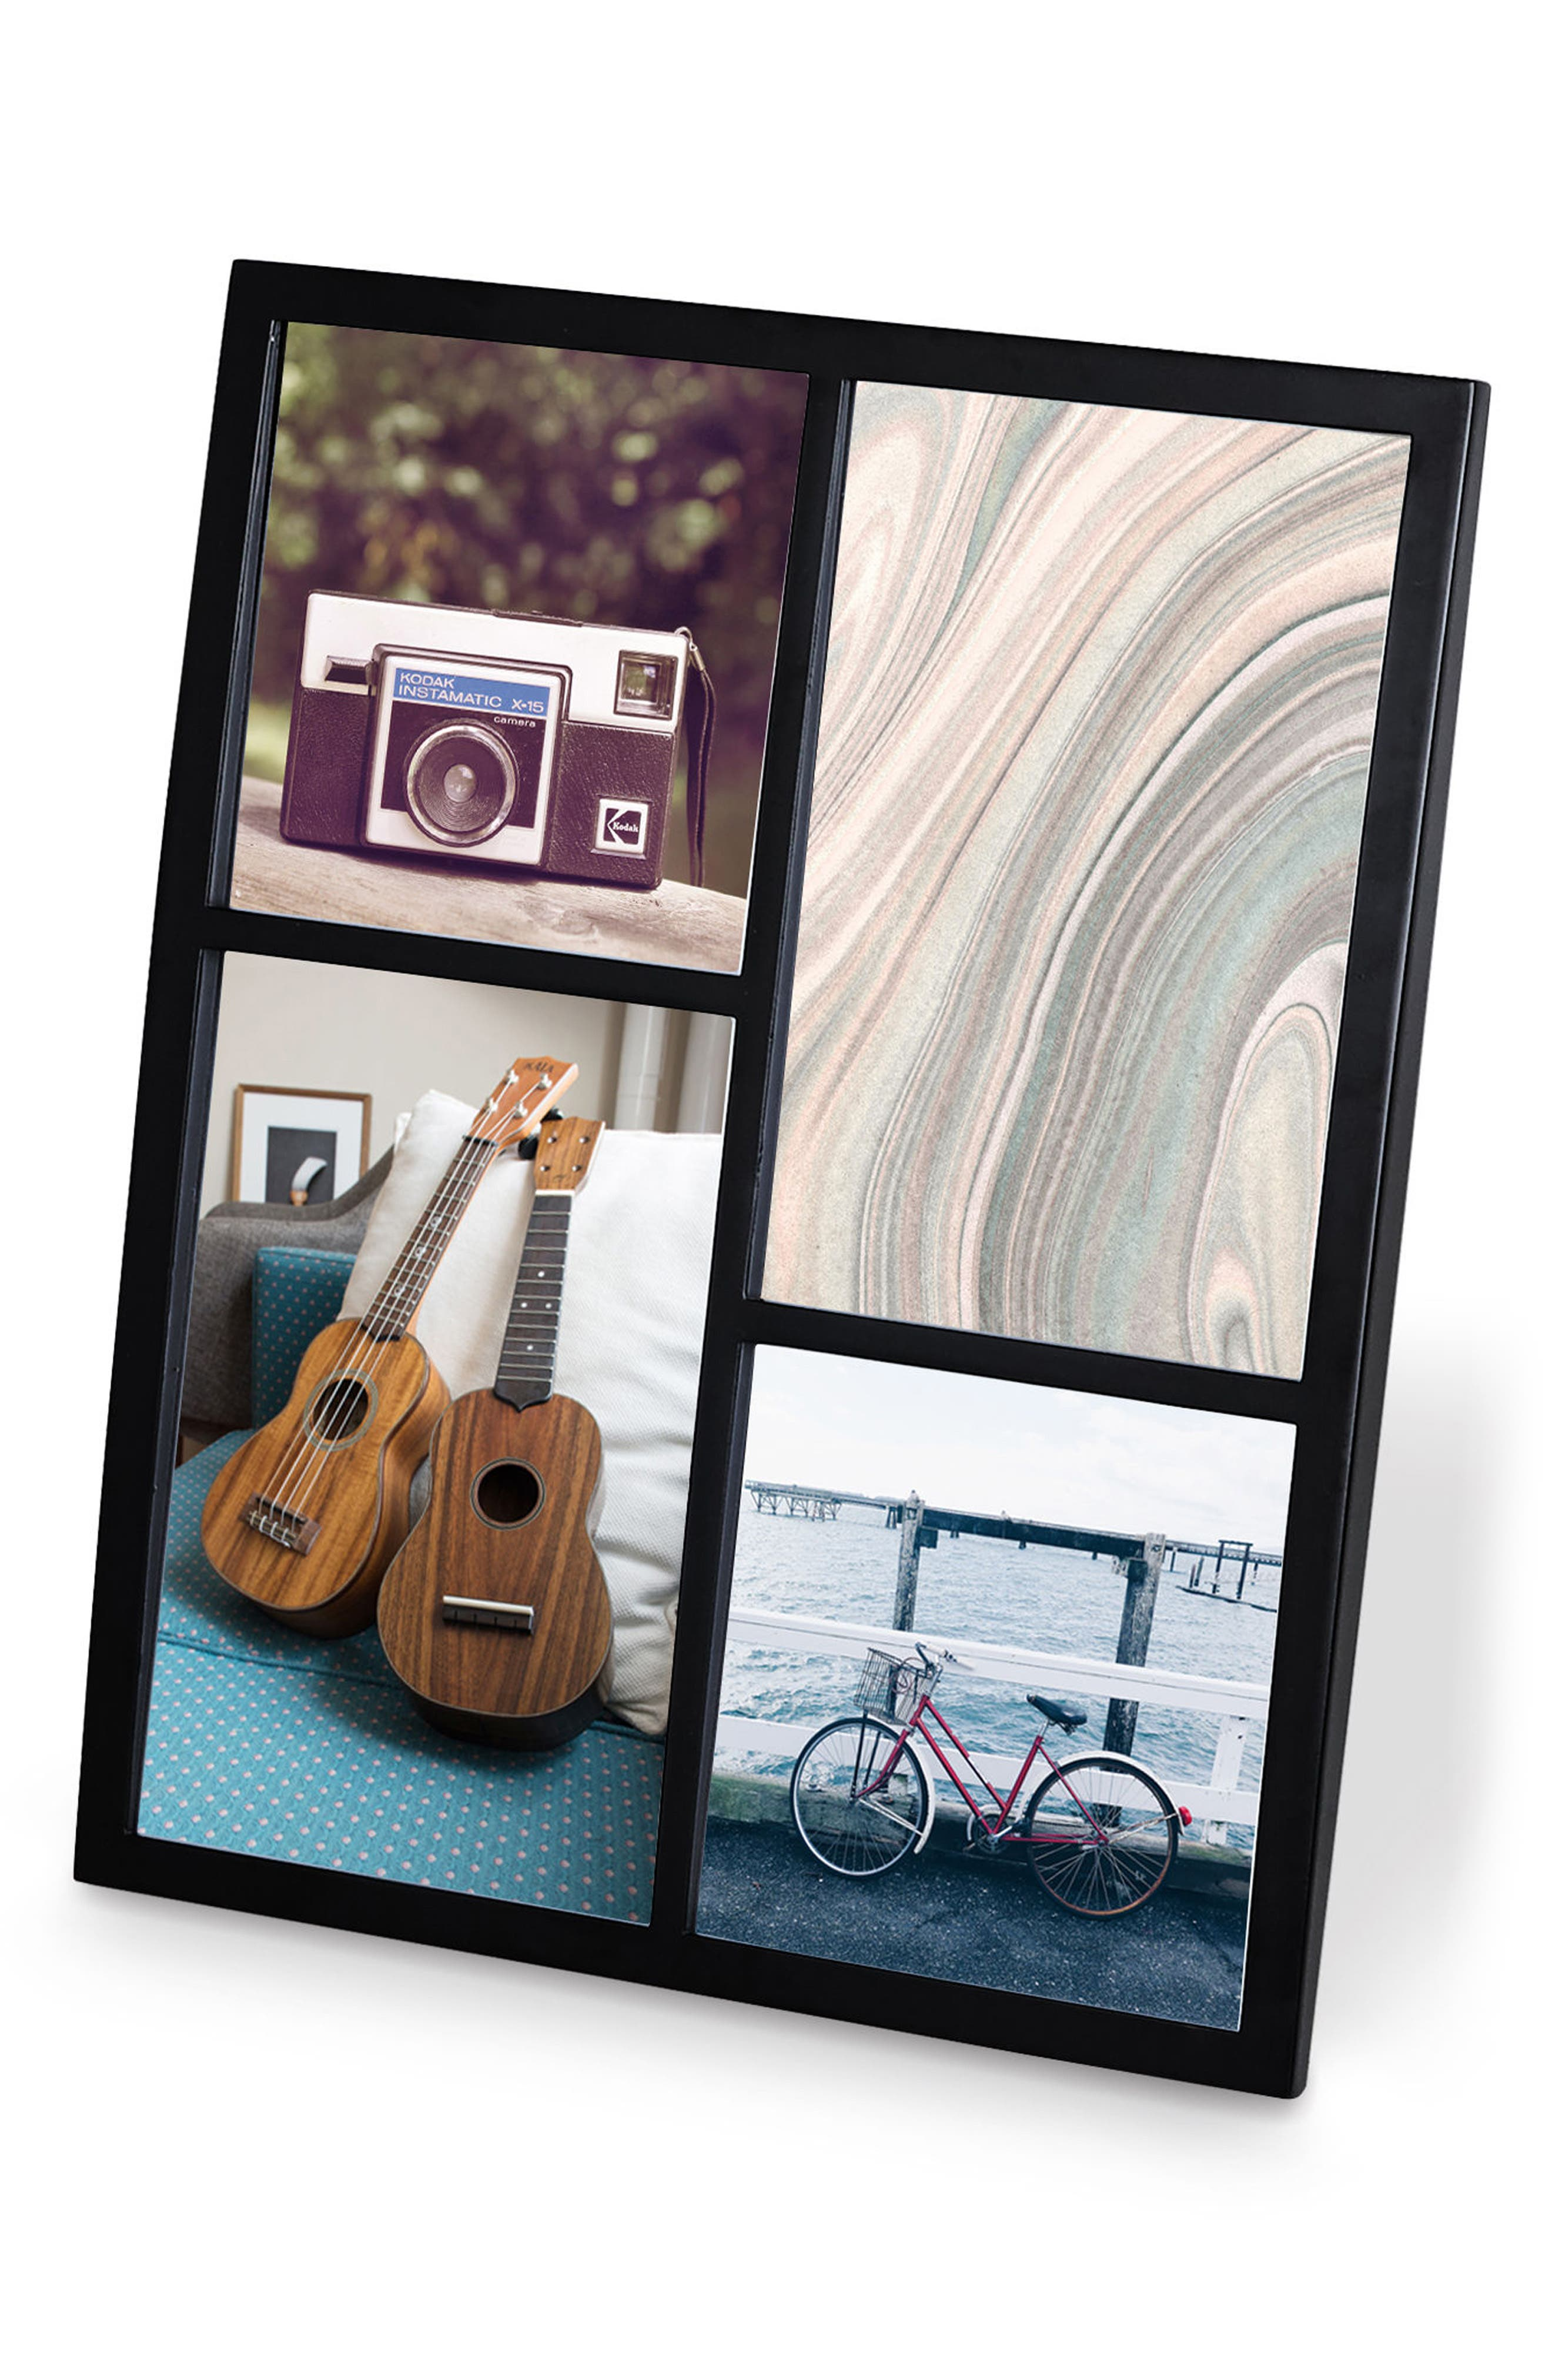 Umbra Senza Multi Display Picture Frame